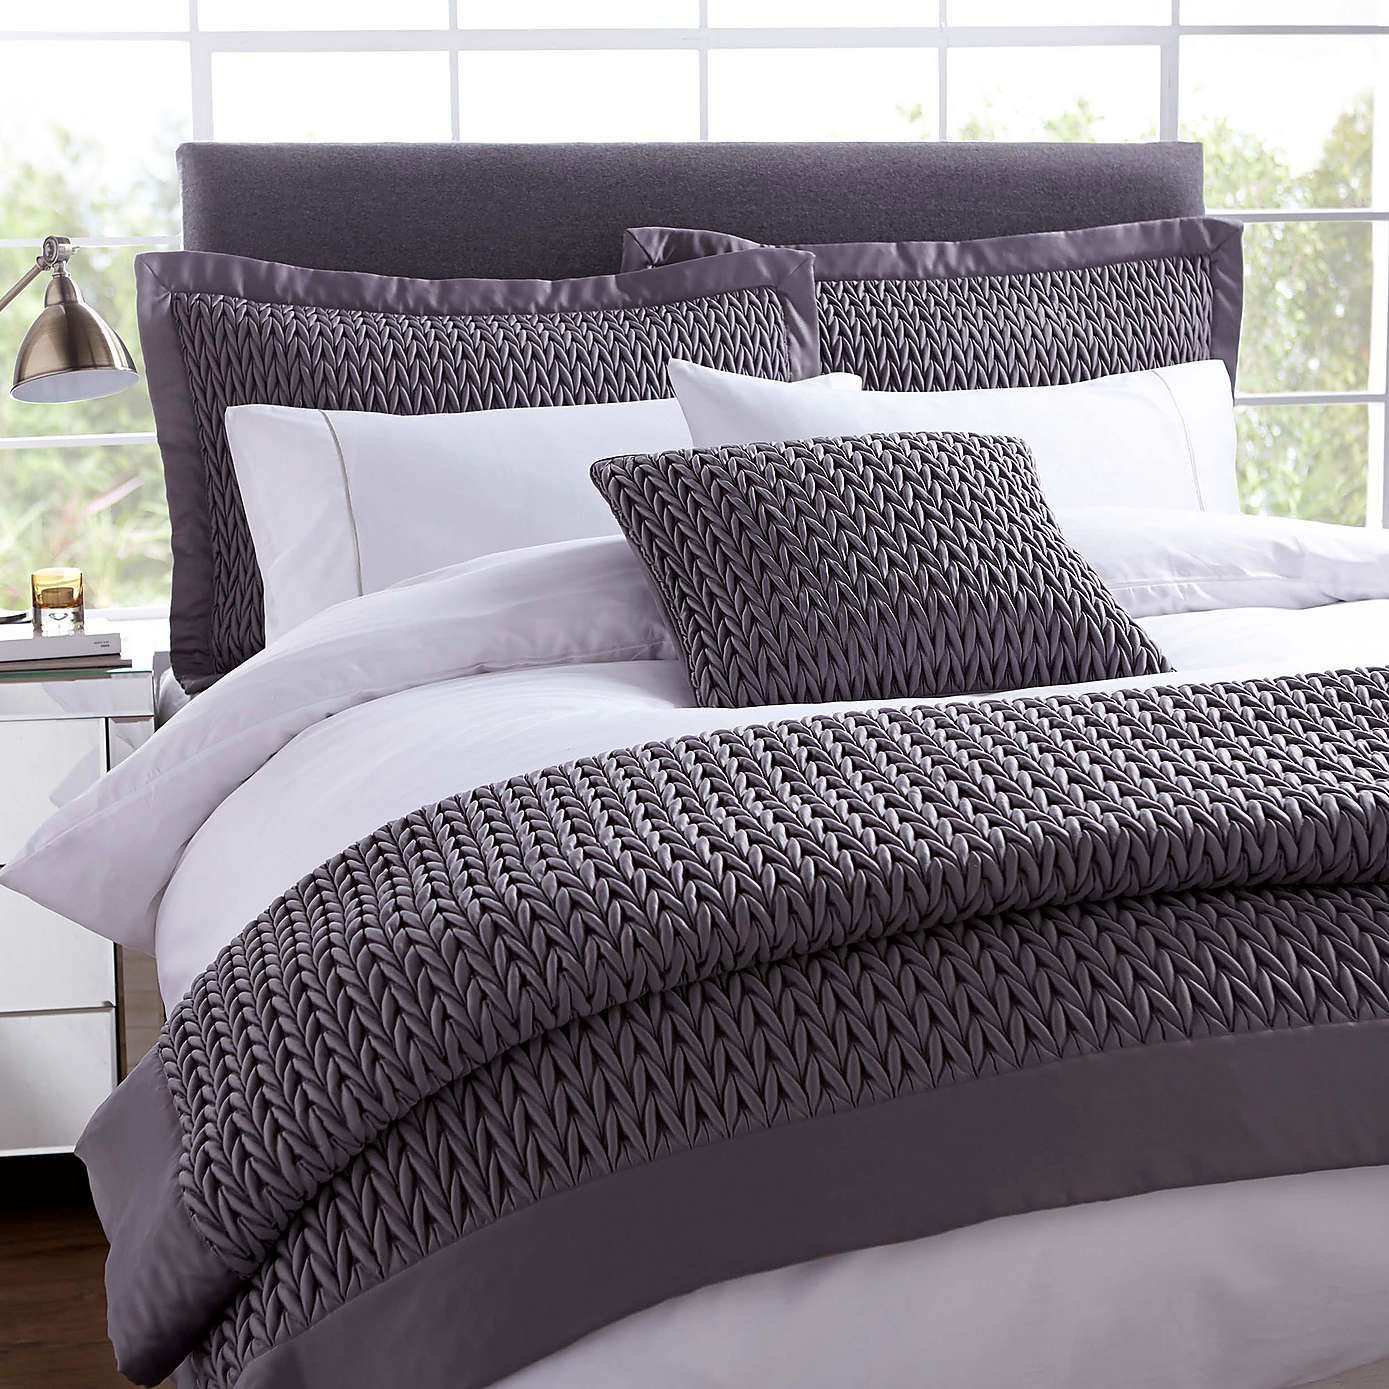 hotel charcoal piccadilly square cushion | dunelm | new home ideas